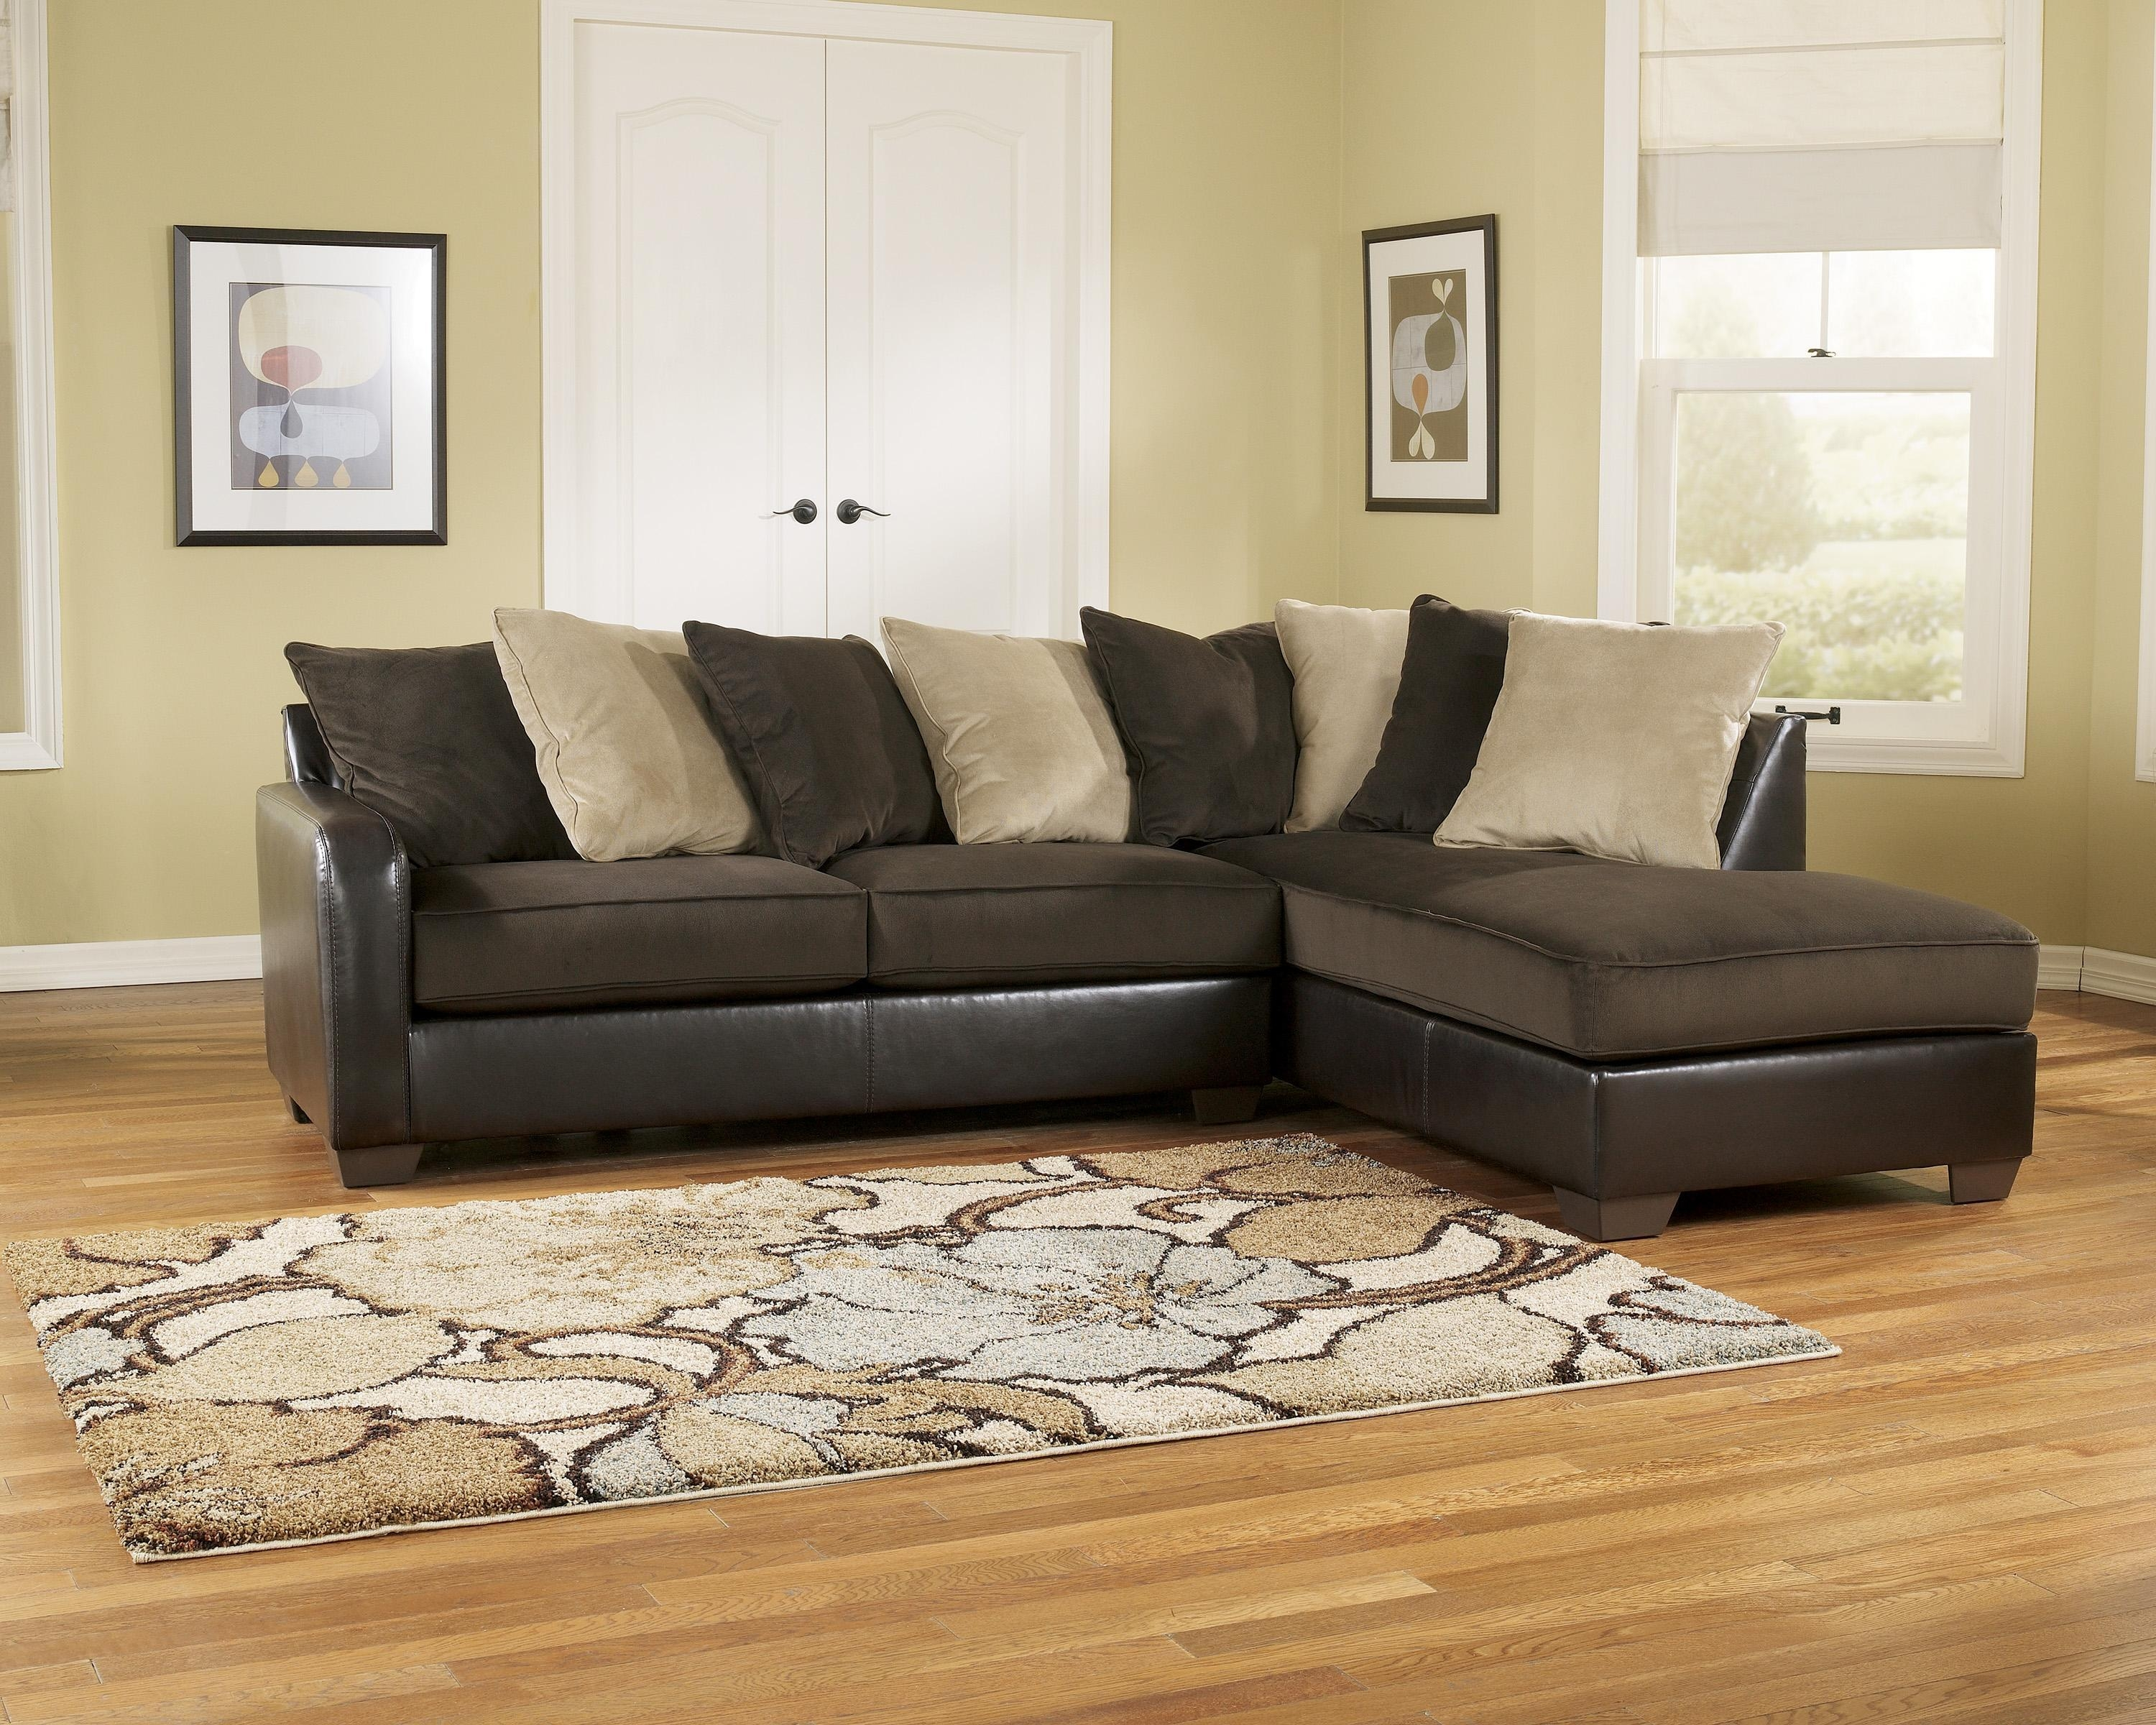 Featured Image of Sectional Sofas Ashley Furniture